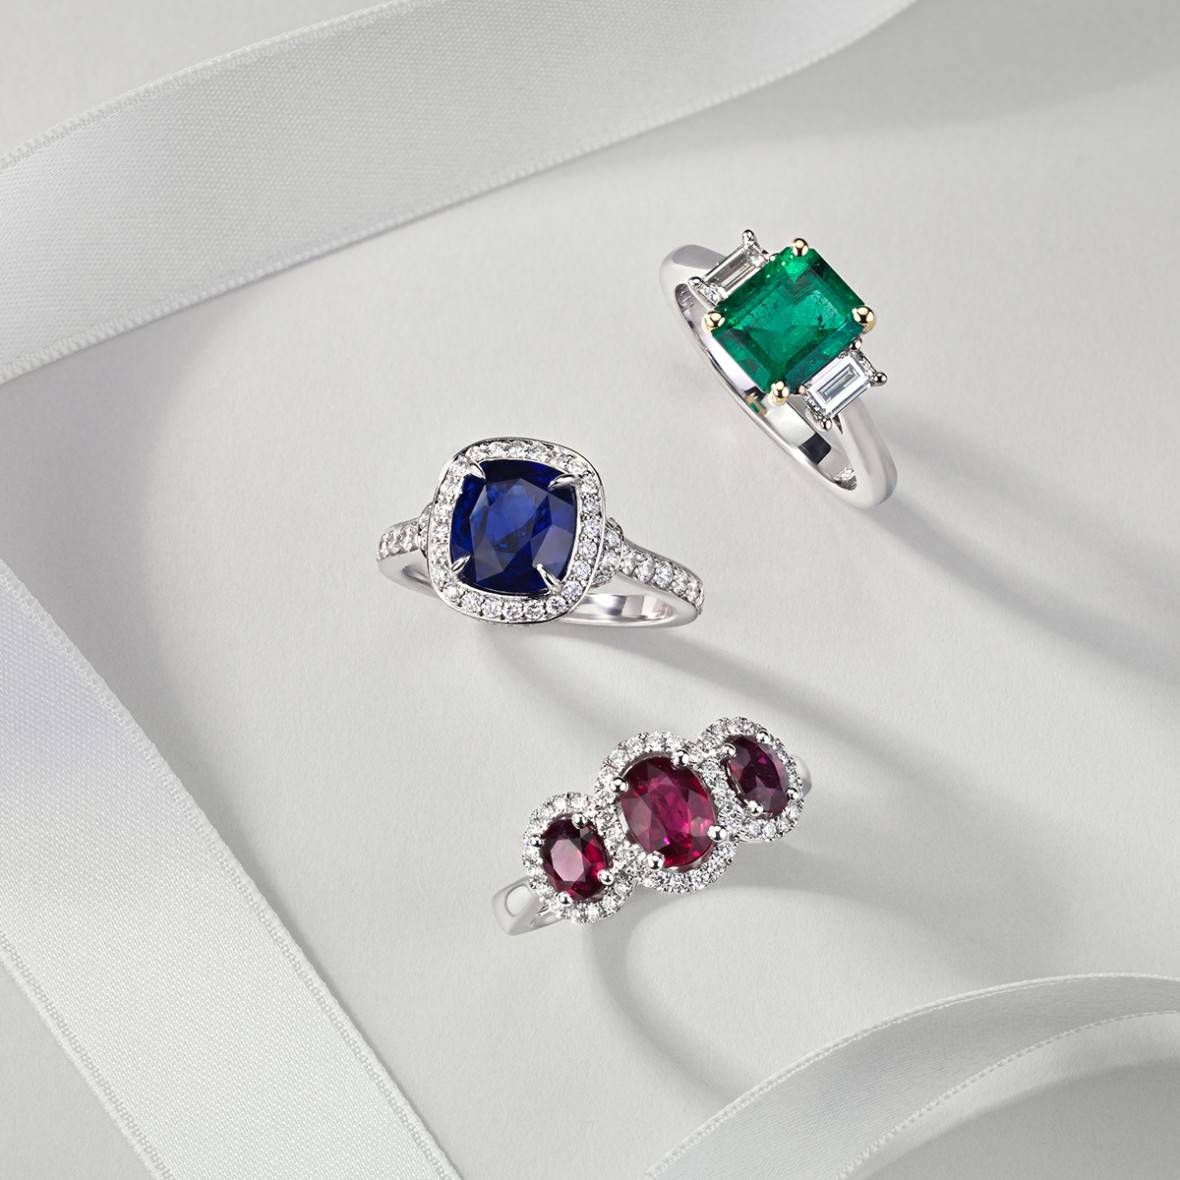 Blue Nile Colored Gemstone Engagement Rings - Budget Savvy Engagement Ring Shopping Tips